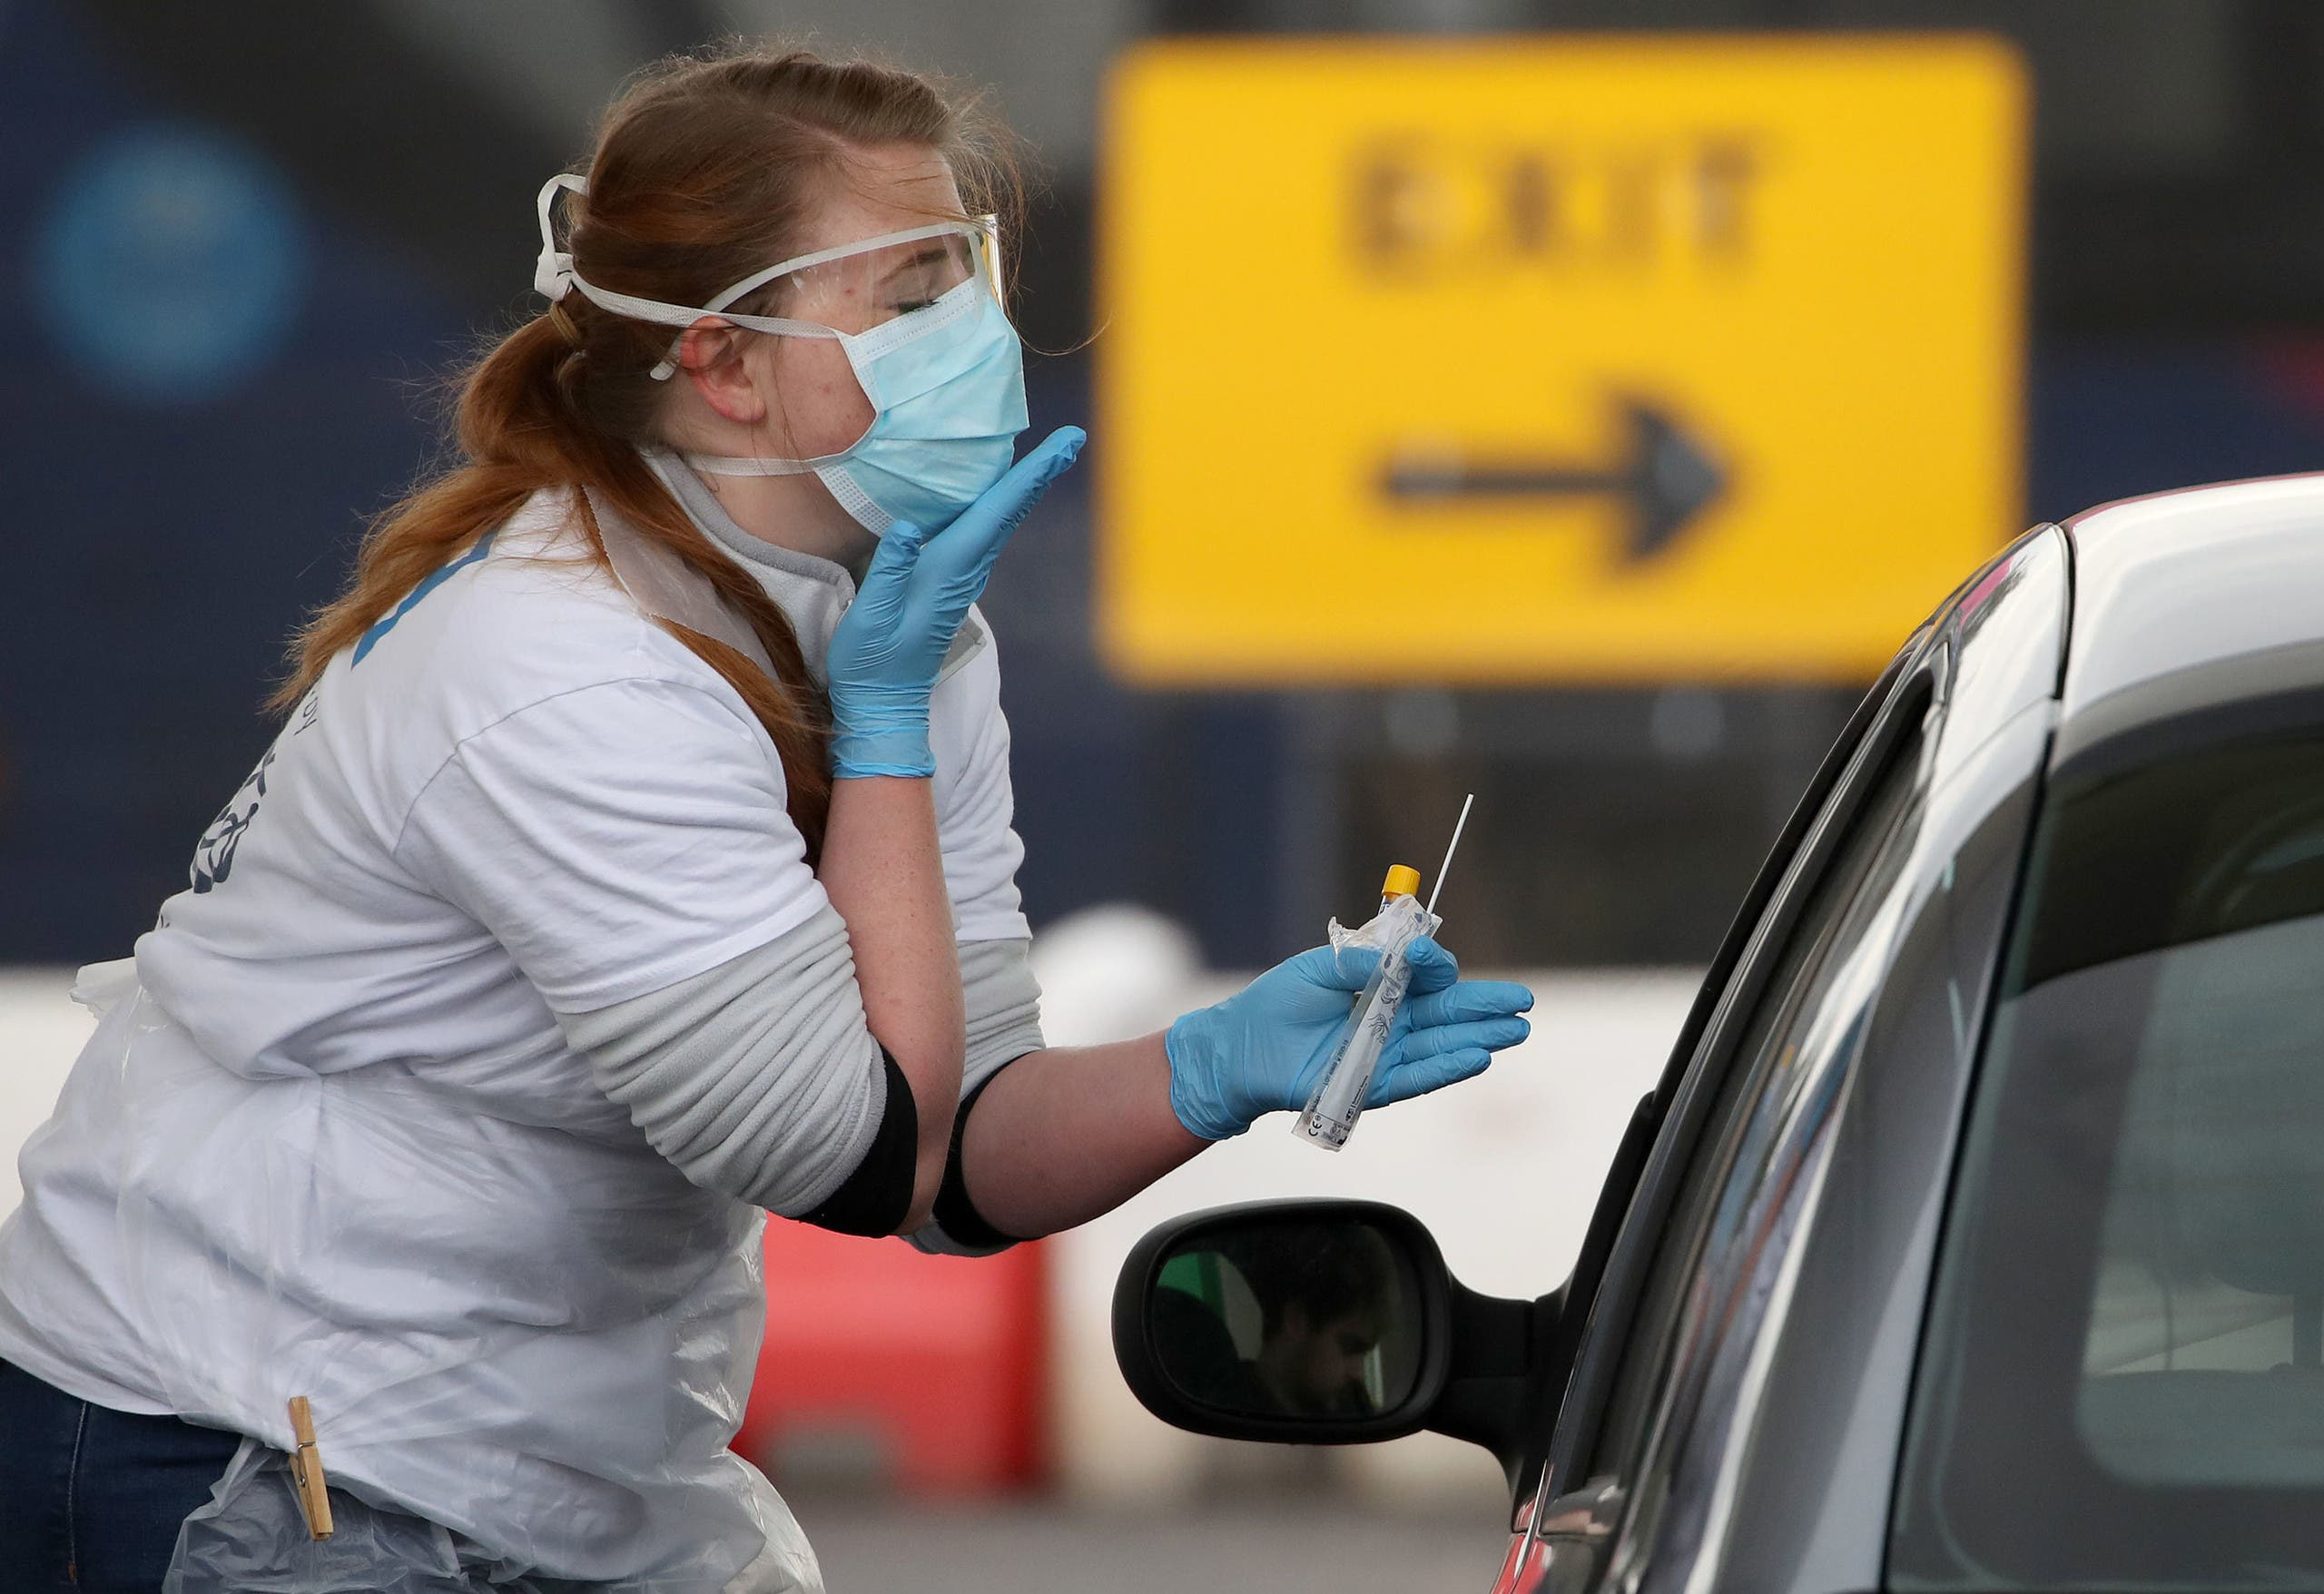 A medical worker tests a key worker for the novel coronavirus Covid-19 at a drive-in testing centre at Glasgow Airport on April 29, 2020, as the UK continues in lockdown to help curb the spread of the coronavirus.